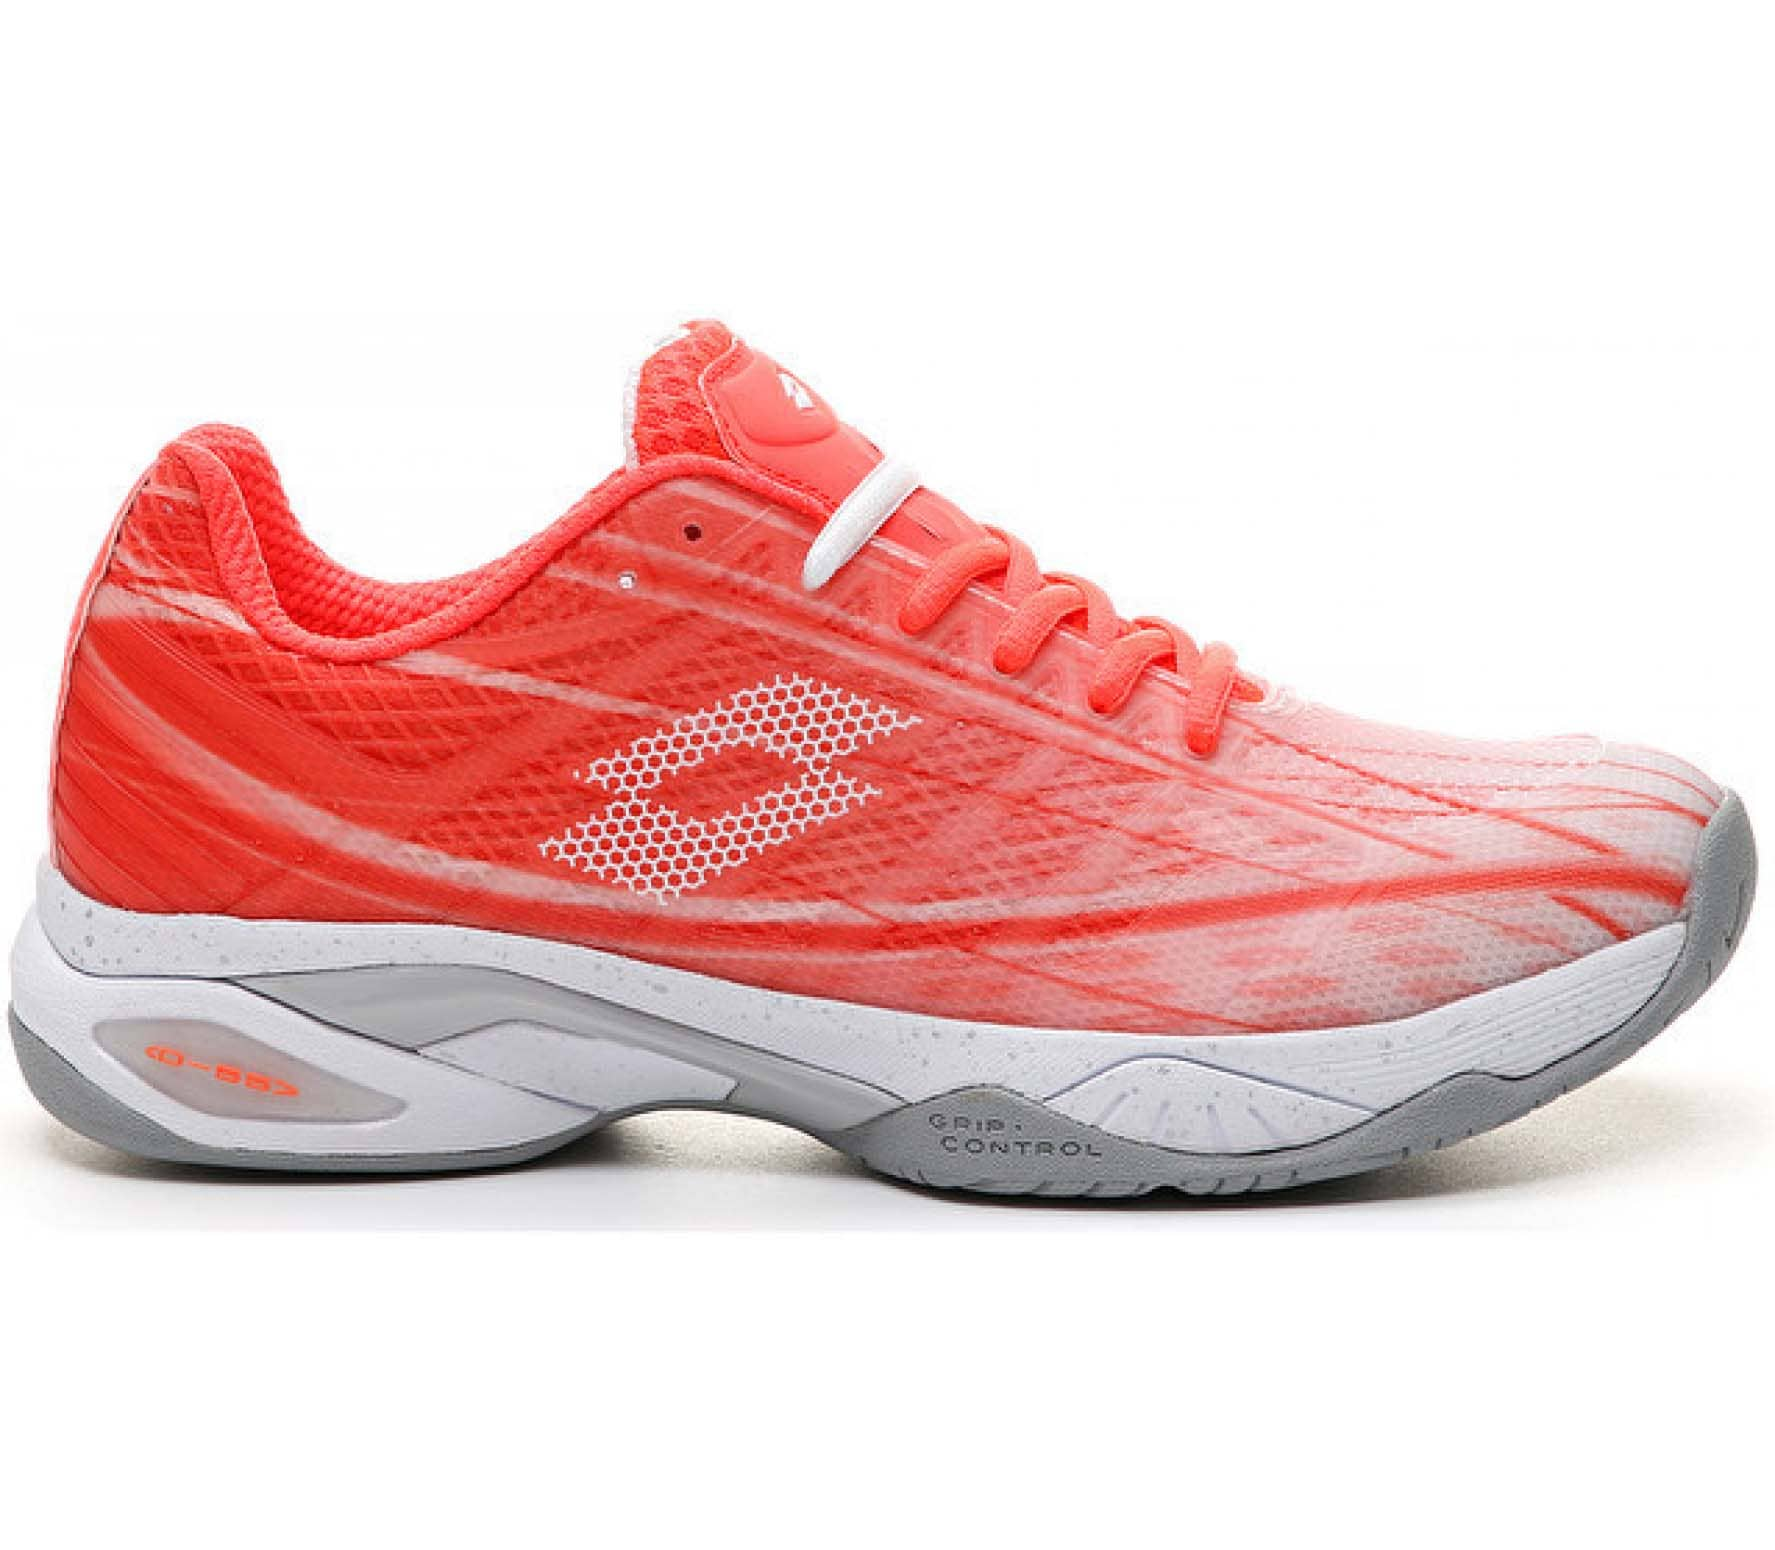 Lotto Mirage 300 Speed Femmes Chaussure tennis rouge